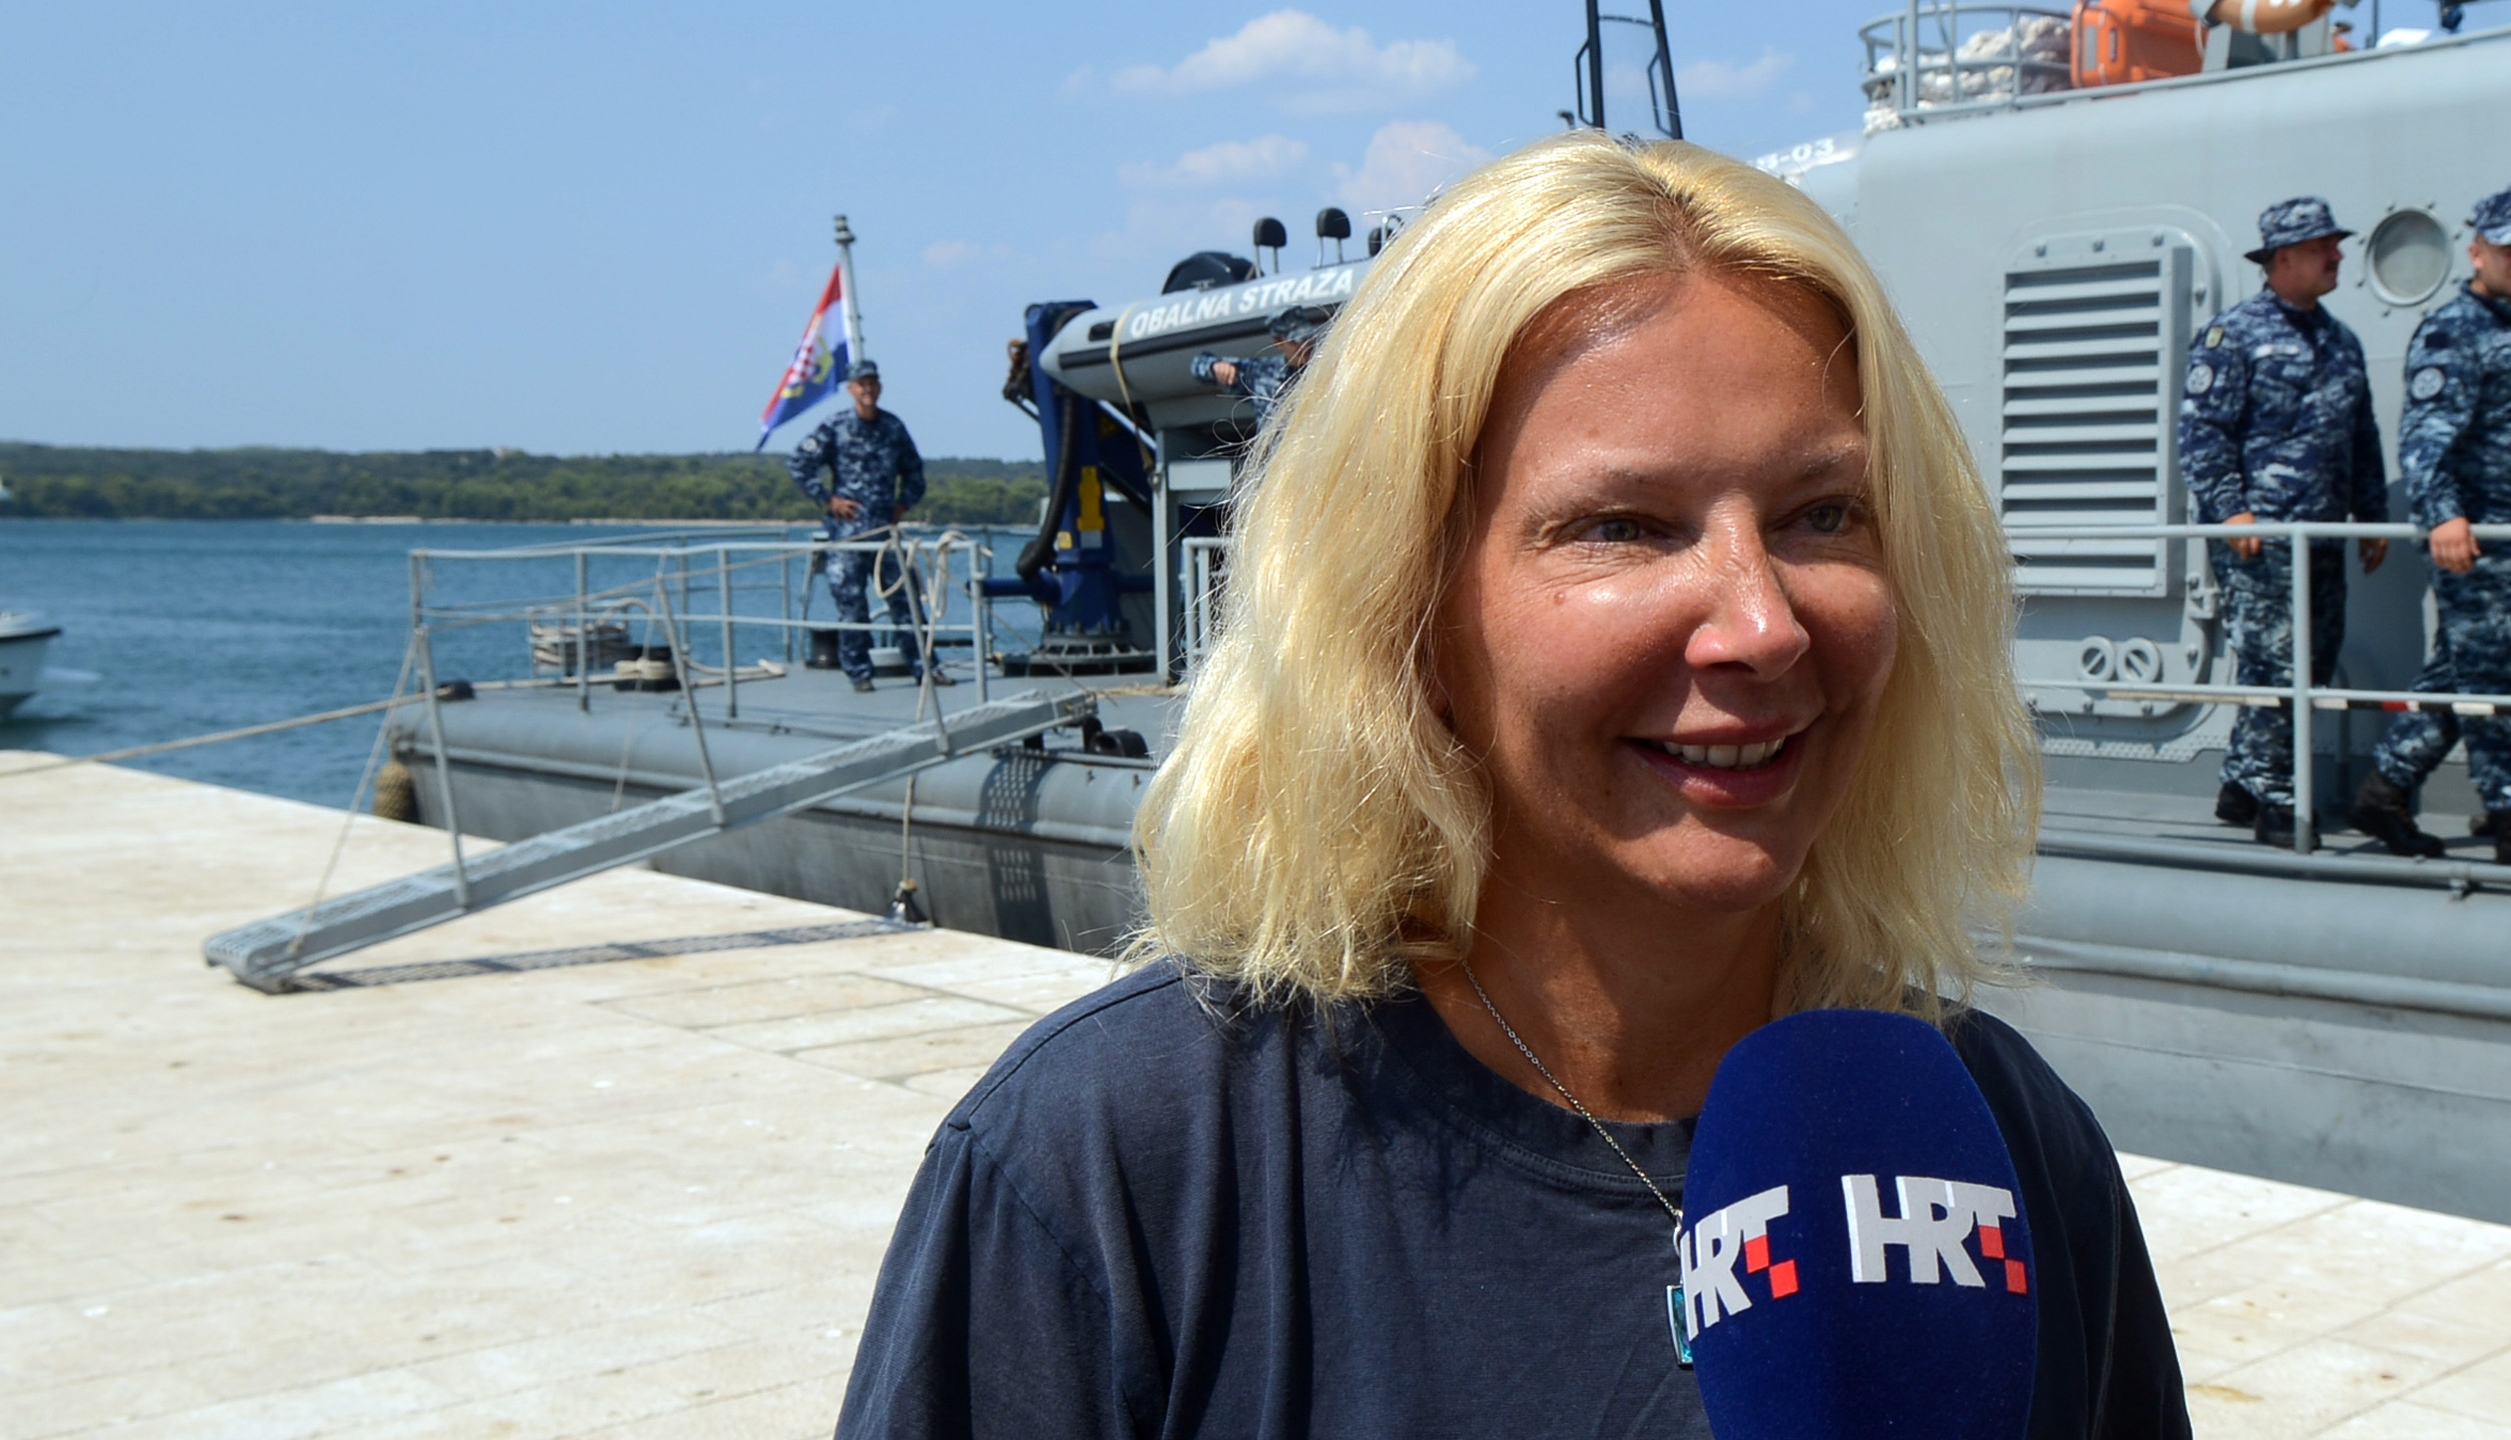 British tourist Kay Longstaff speaks to the press upon her arrival in Pula with the Croatias coast guard ship, on August 19, 2018, which saved her after falling off a cruise ship near Croatian coast. (Credit: STR/AFP/Getty Images).